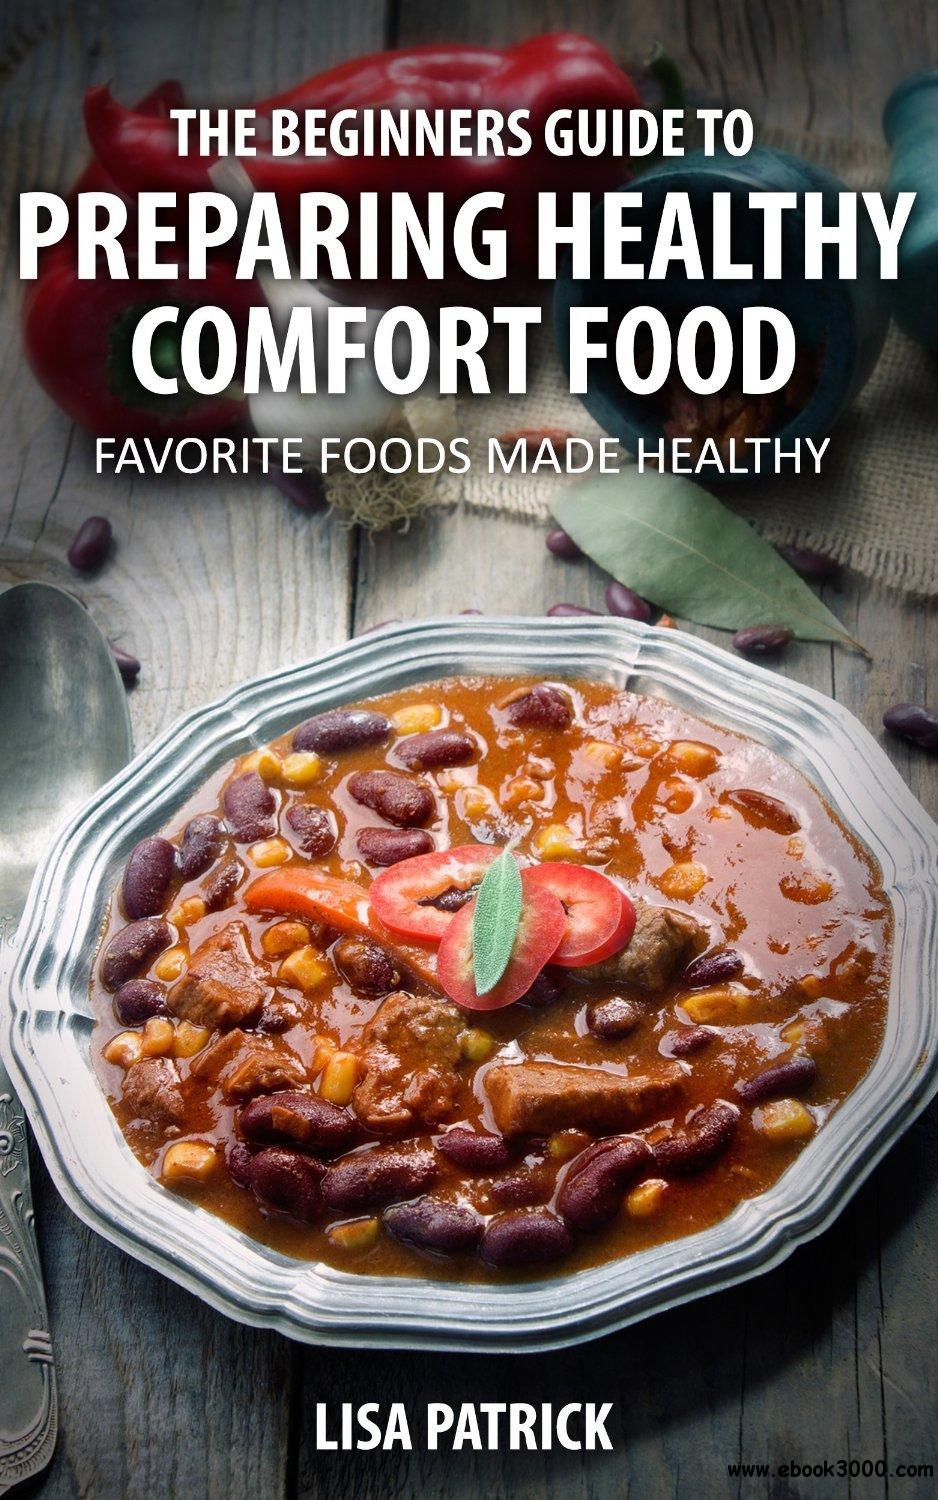 The Beginners Guide To Preparing Healthy Comfort Food: Favorite Foods Made Healthy free download